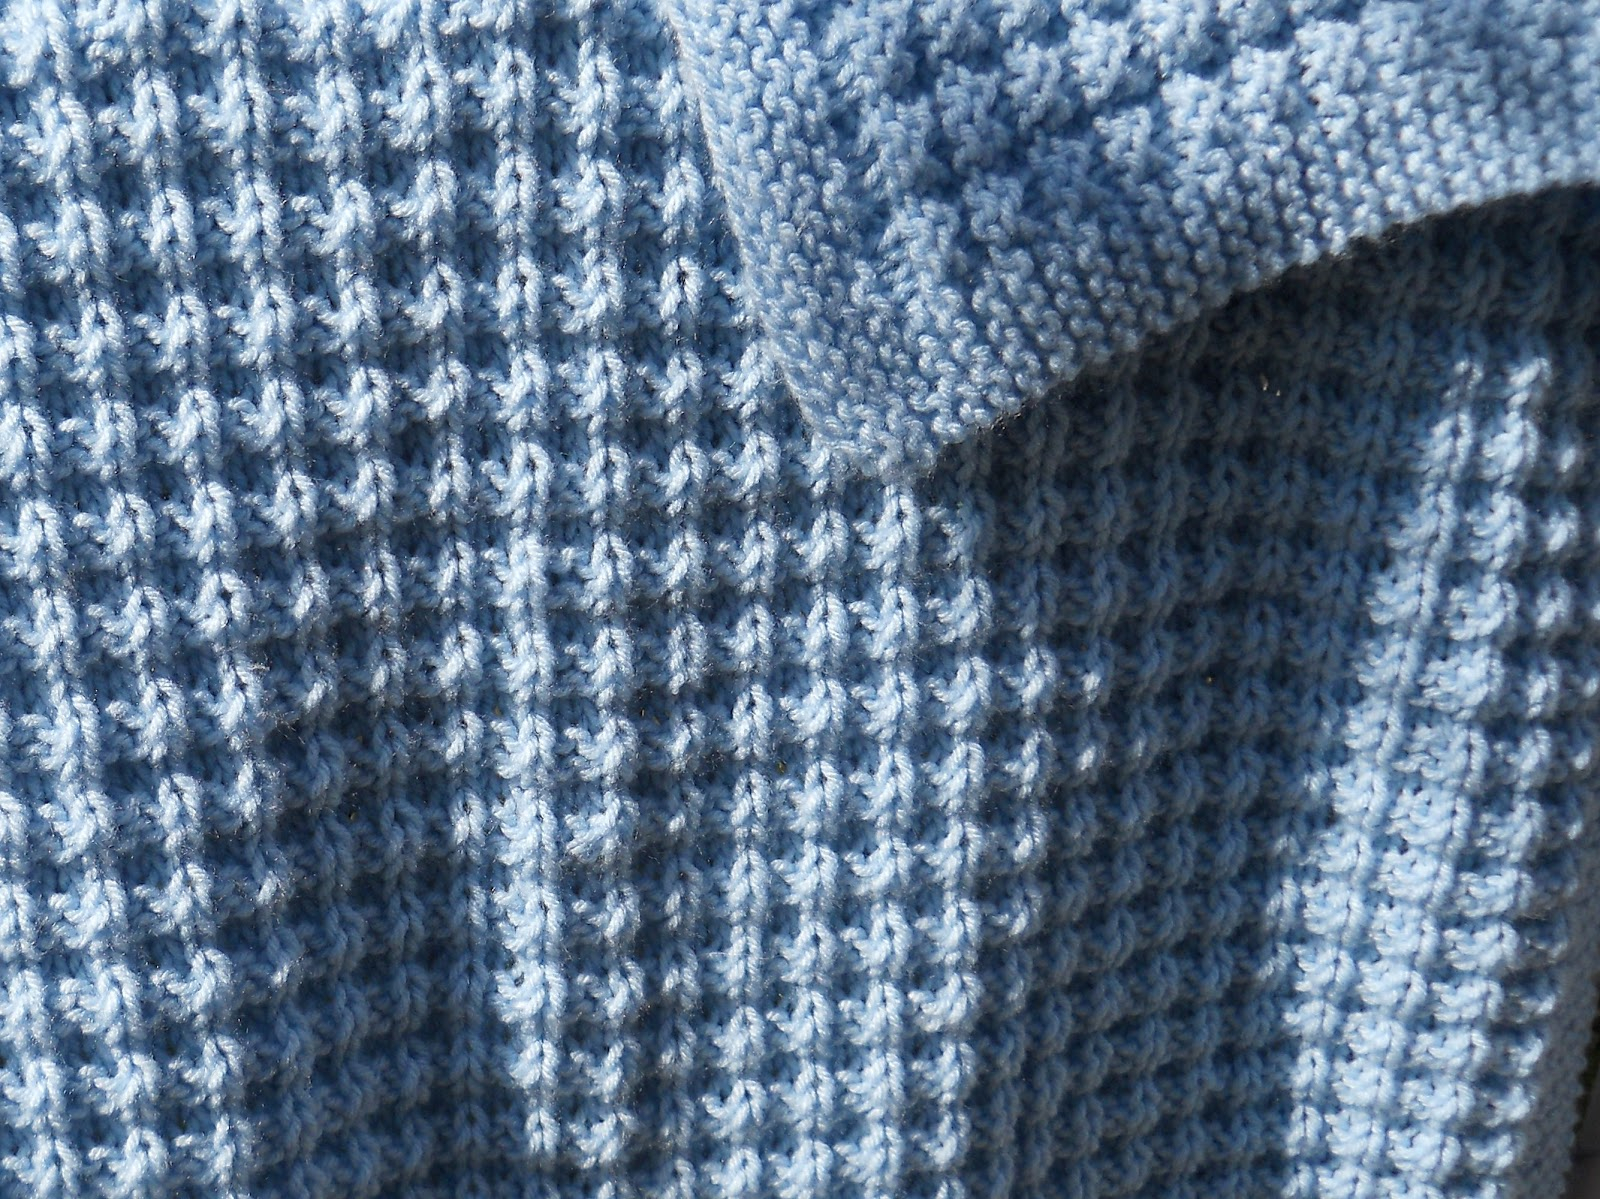 Knitting Pattern For Baby Blankets Free Knitting Patterns Cable Ba Blankets